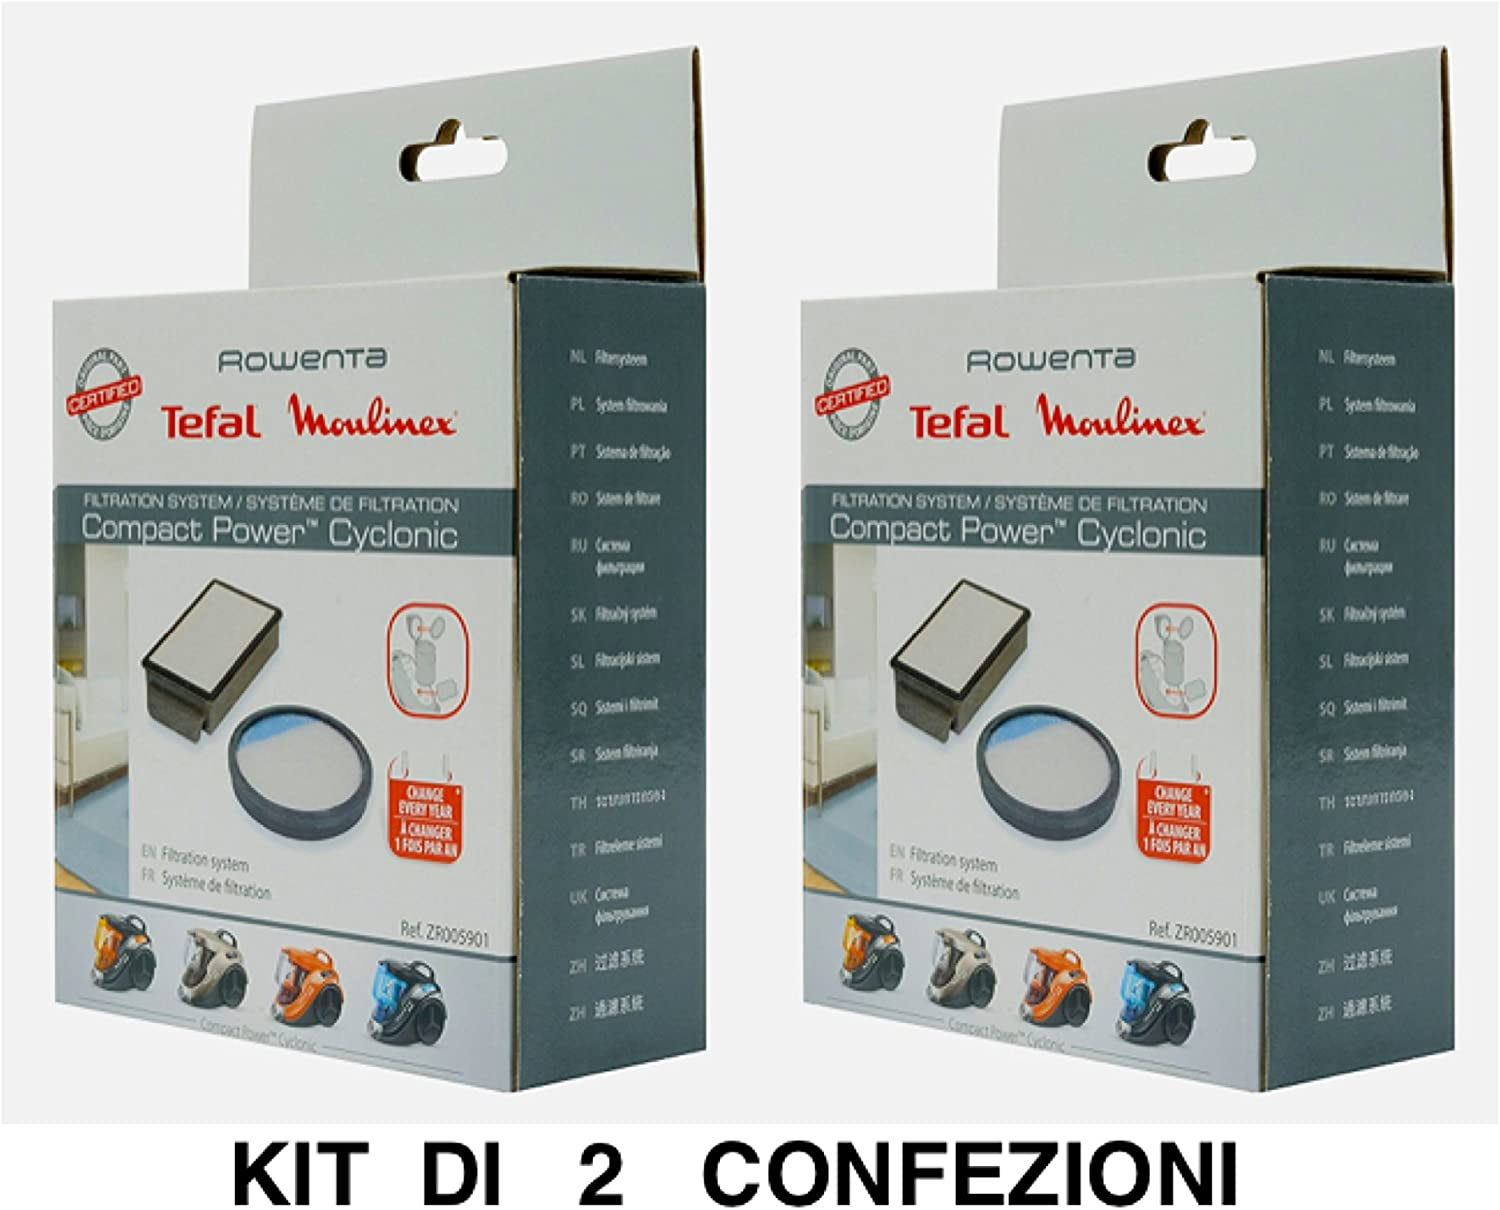 2 x Filtros Rowenta Compact Power Cyclonic zr005901: Amazon.es: Hogar